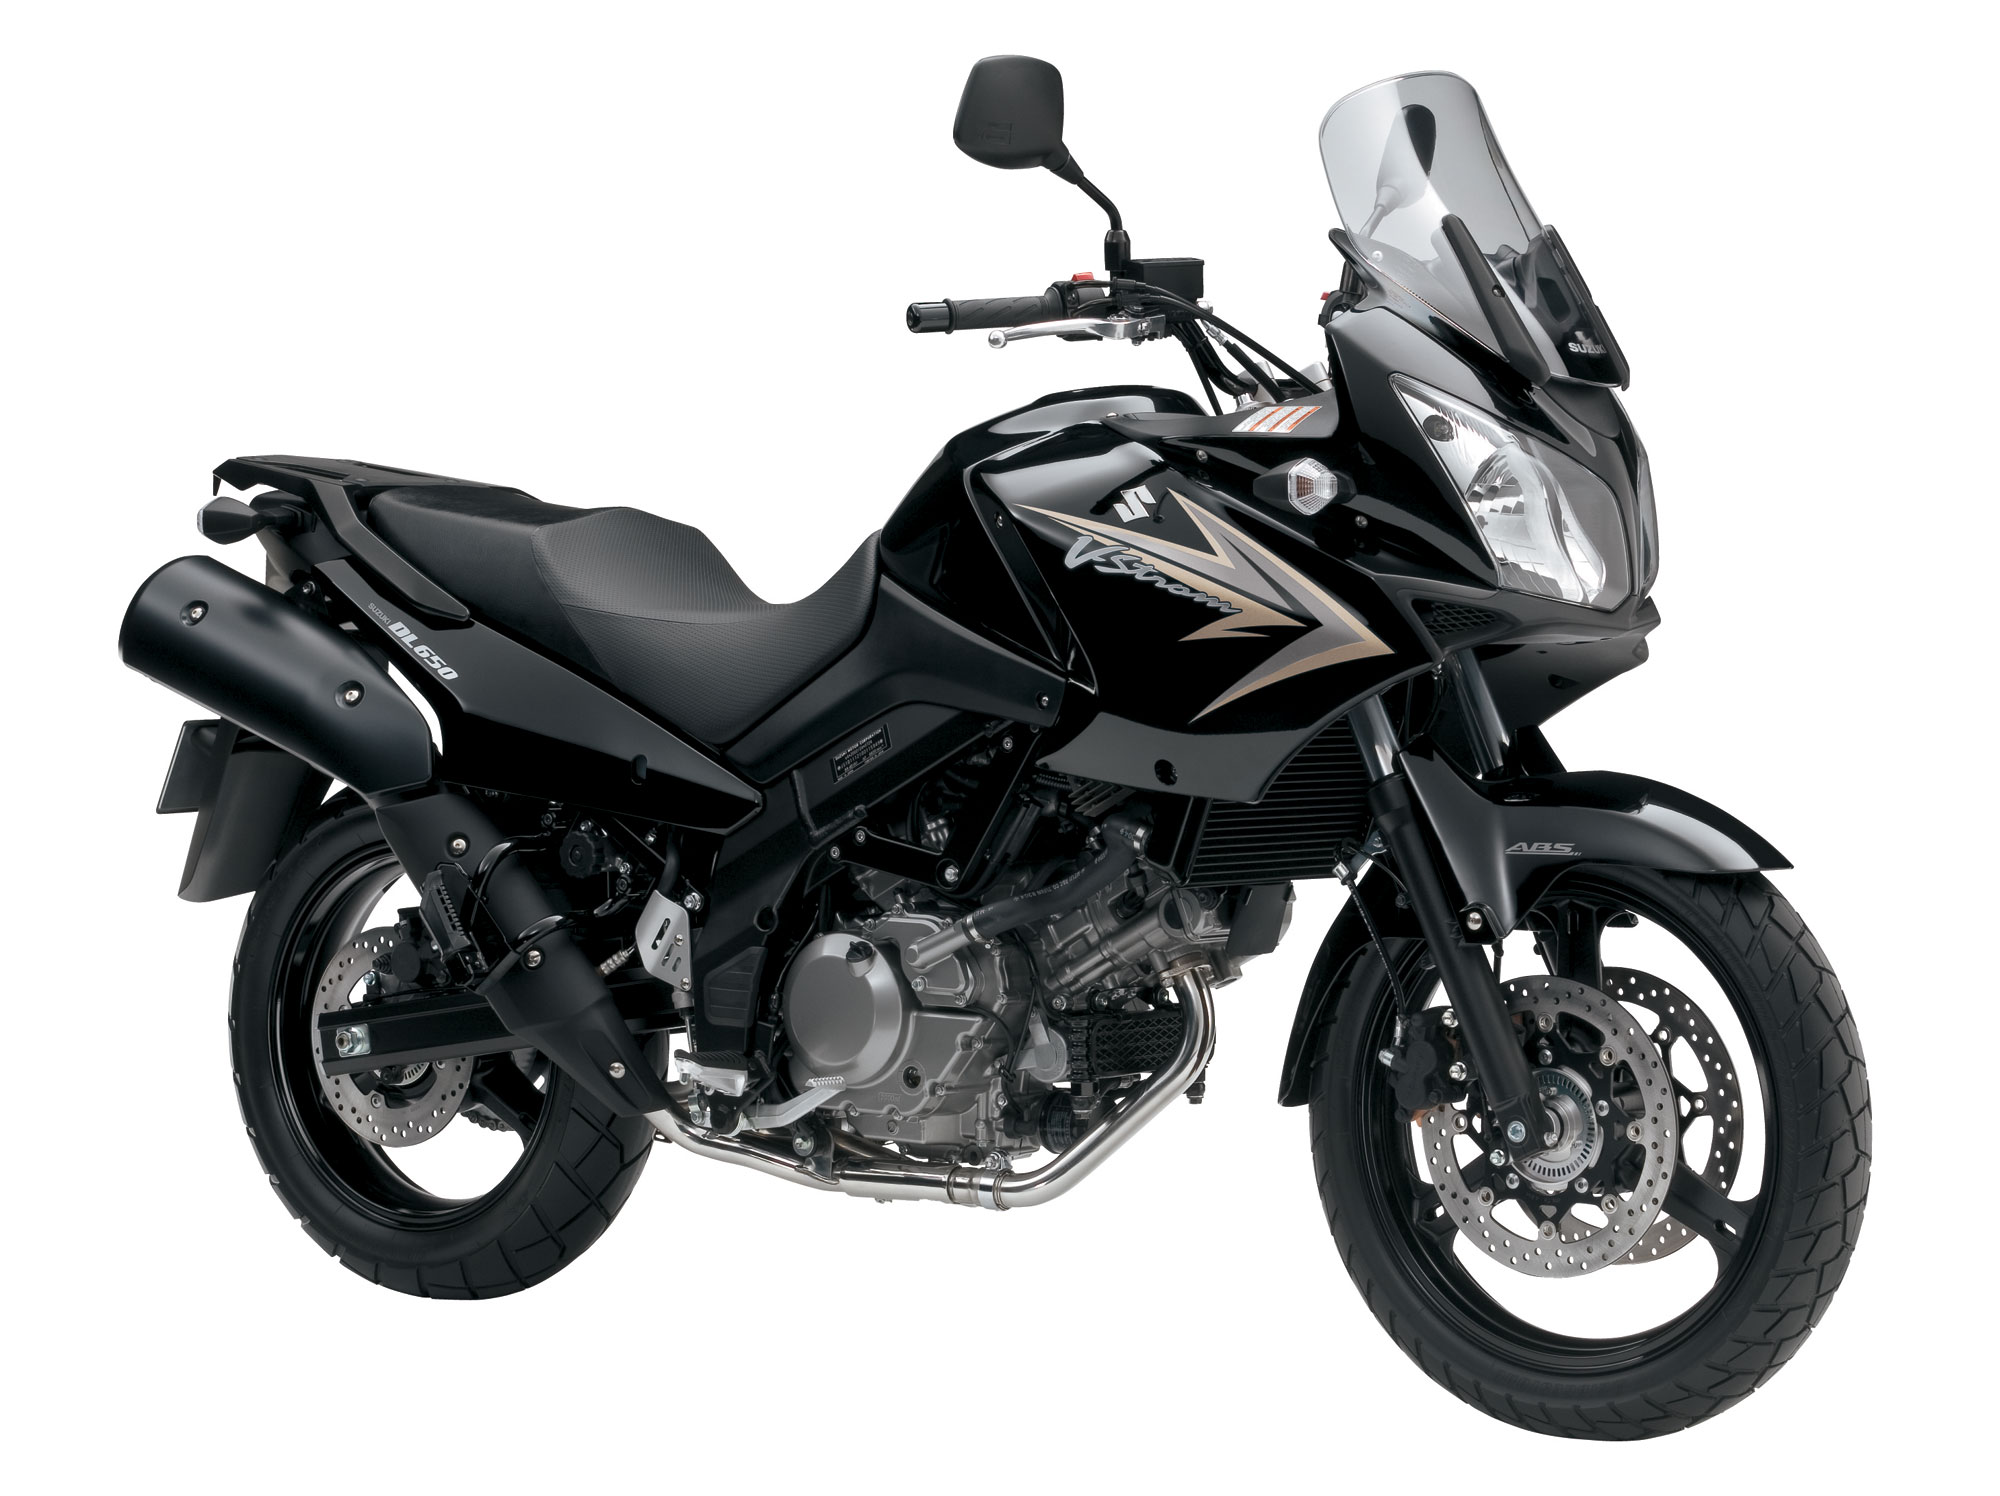 2011 suzuki v strom 650 abs. Black Bedroom Furniture Sets. Home Design Ideas